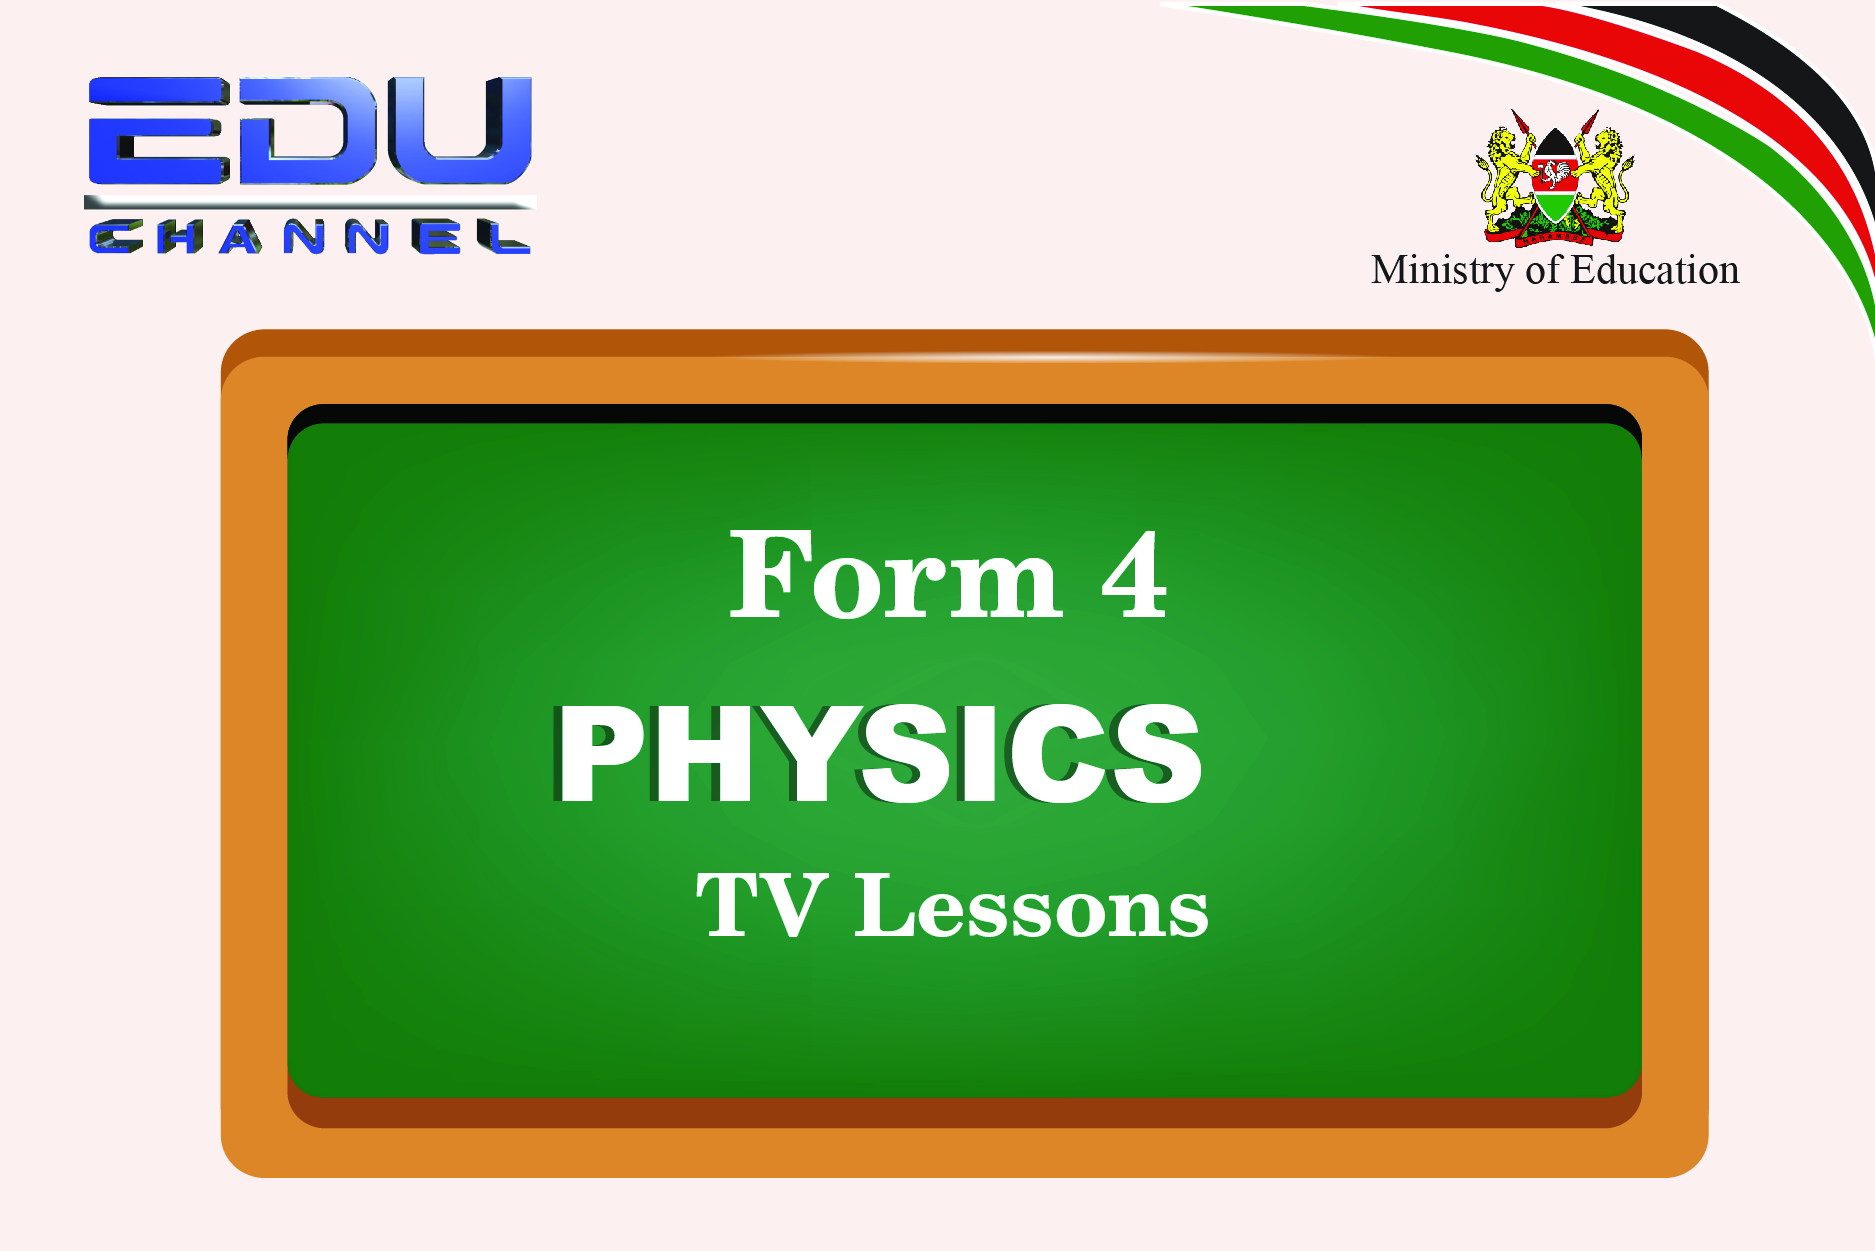 Form 4 Physics Lesson 2: Thin Lenses part 2